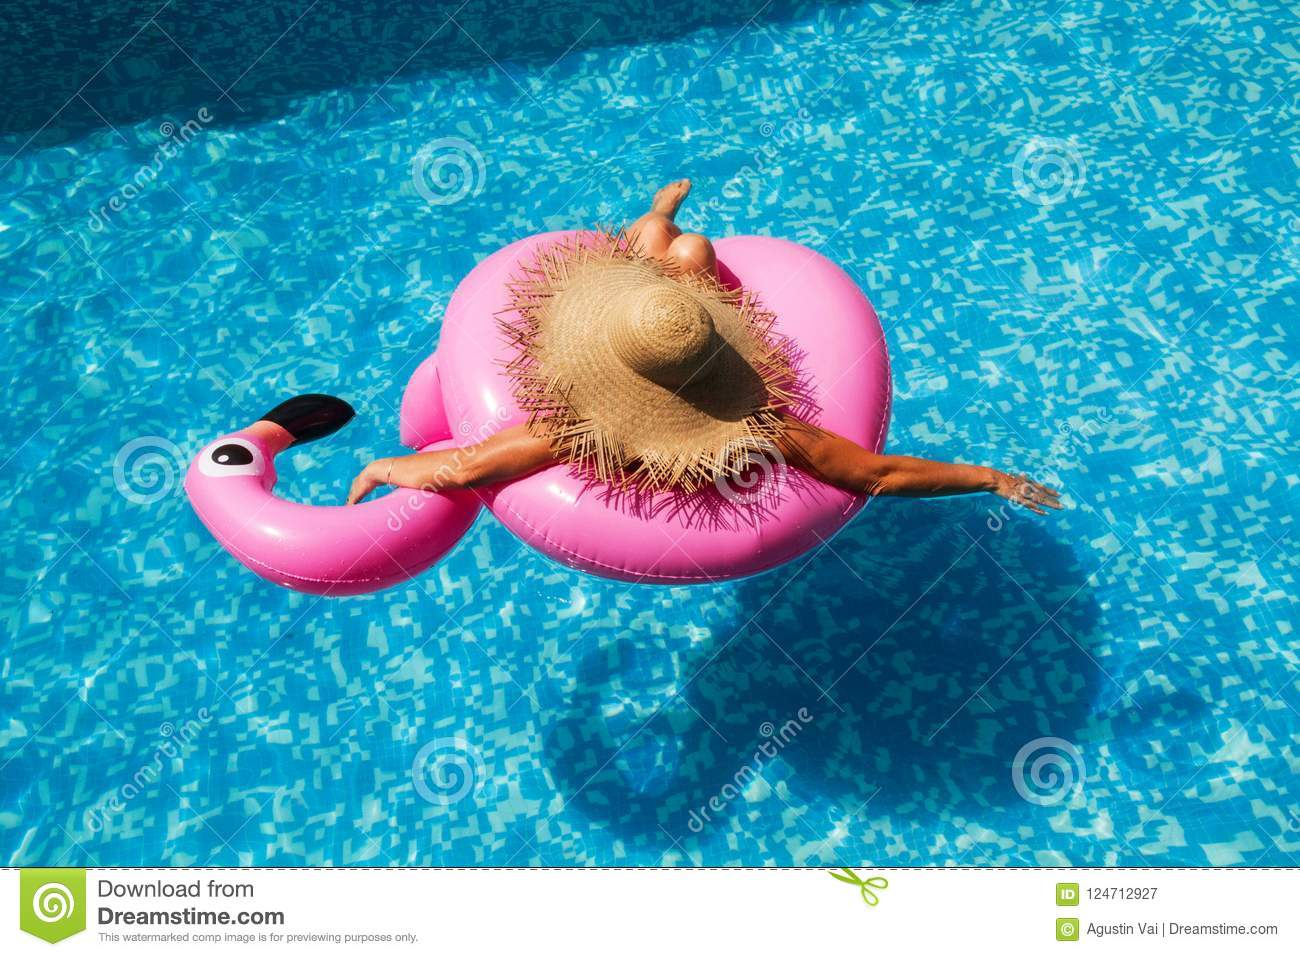 Woman with straw hat in the pool with an inflatable pink flamingo